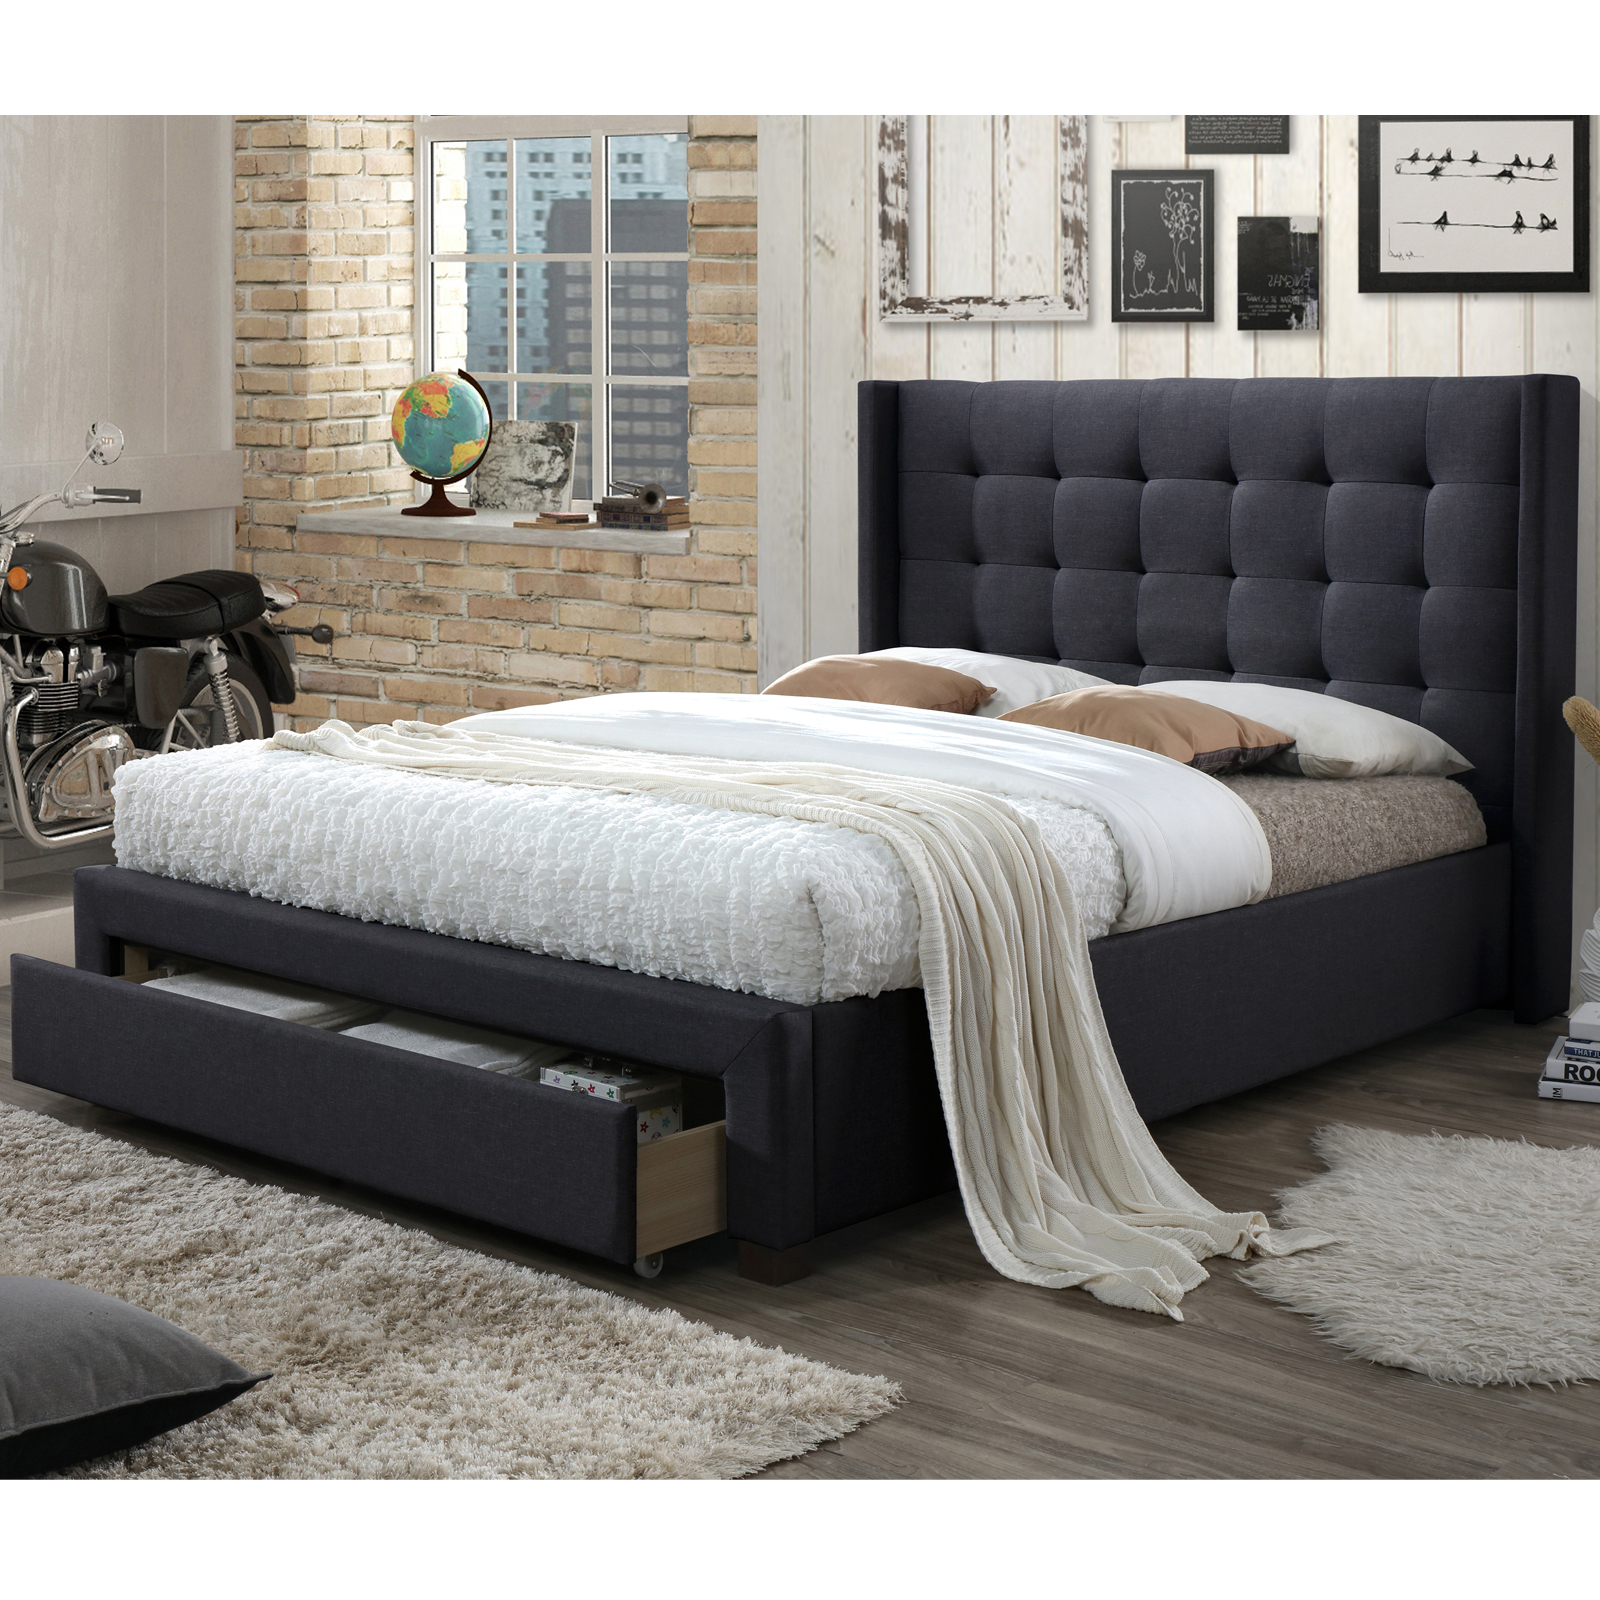 homesense used headboard purchased spring queen bed in set bedroom box frame new mattress with and en brand i form